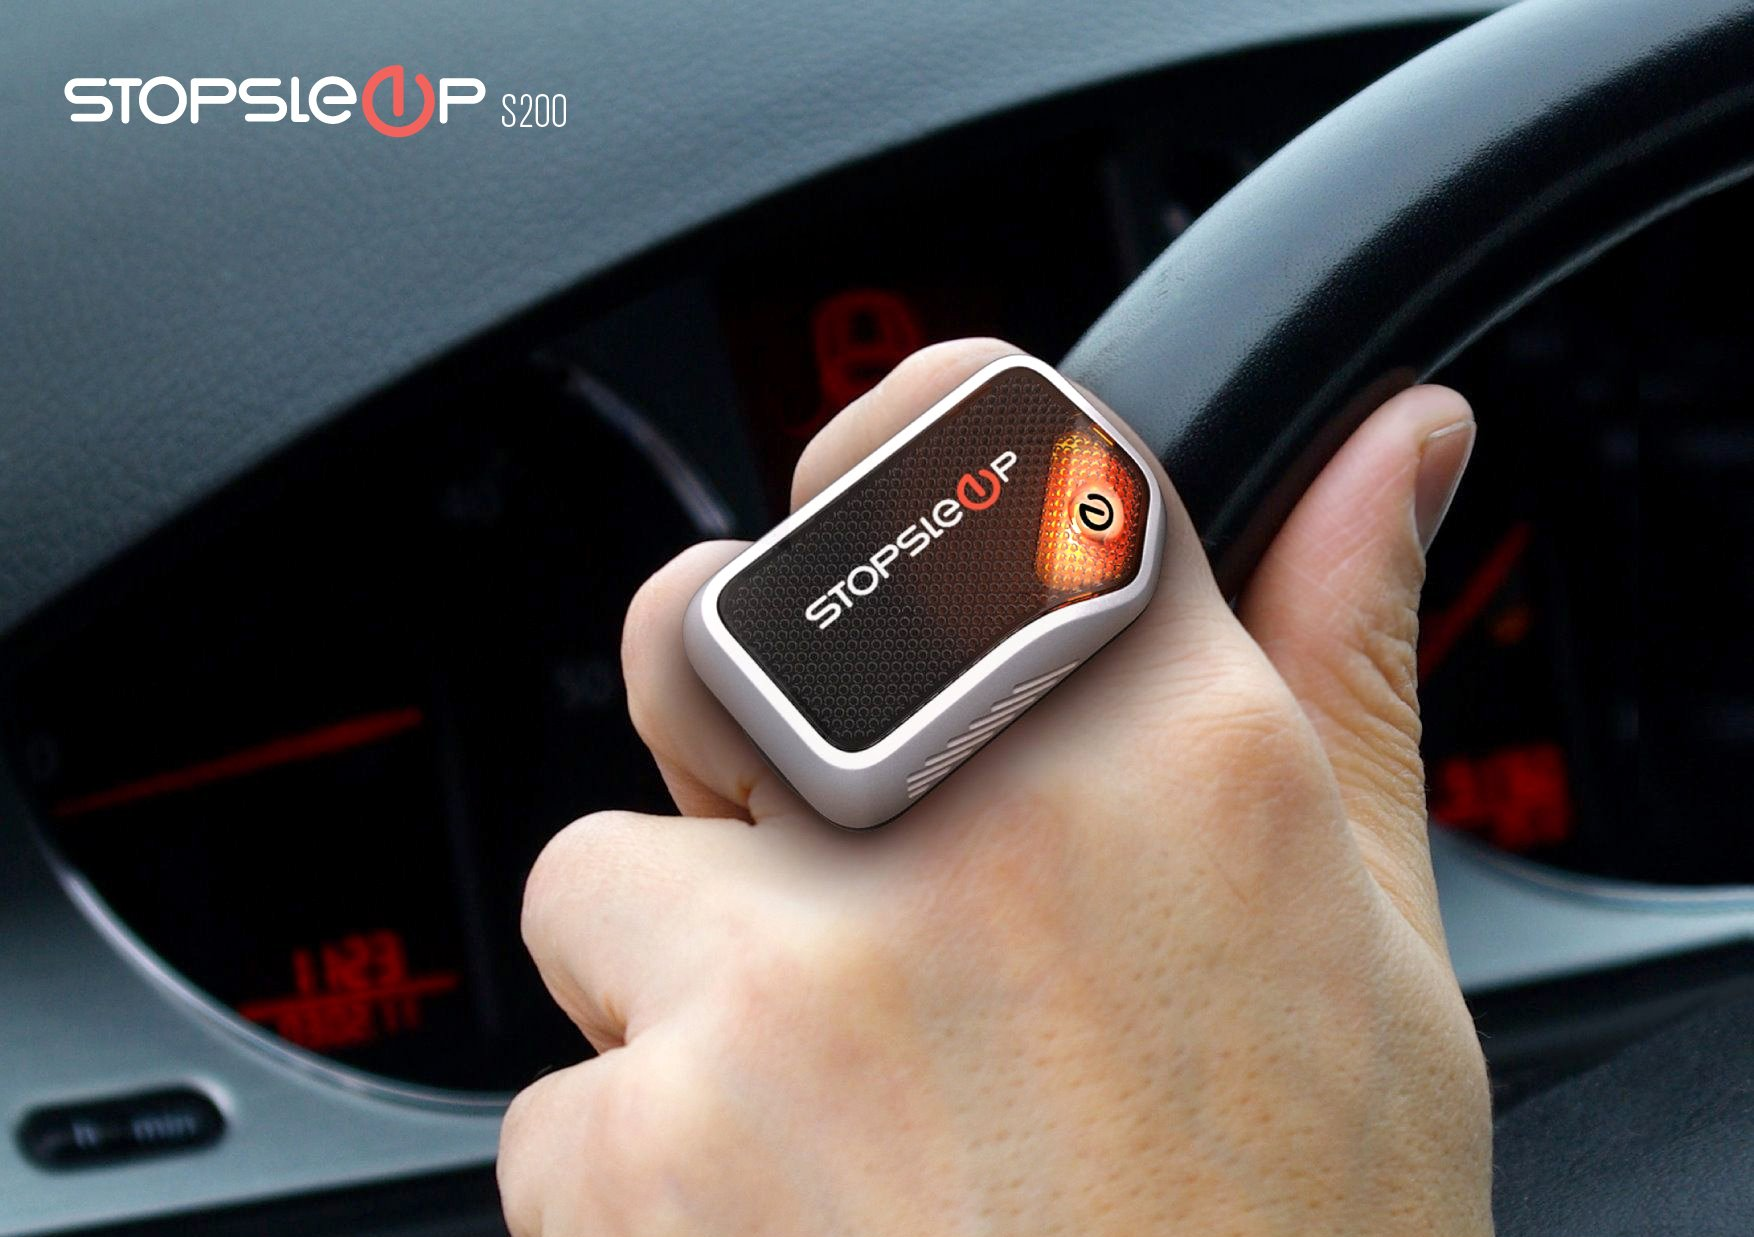 Anti Sleep Alarm for Drivers. Warns up to 5 Minutes Before Drowsiness. Beep and Vibration Doze Alert. Car Truck Safety Driving Warning Device. Stay Awake Nap Detector Technology Alertness System